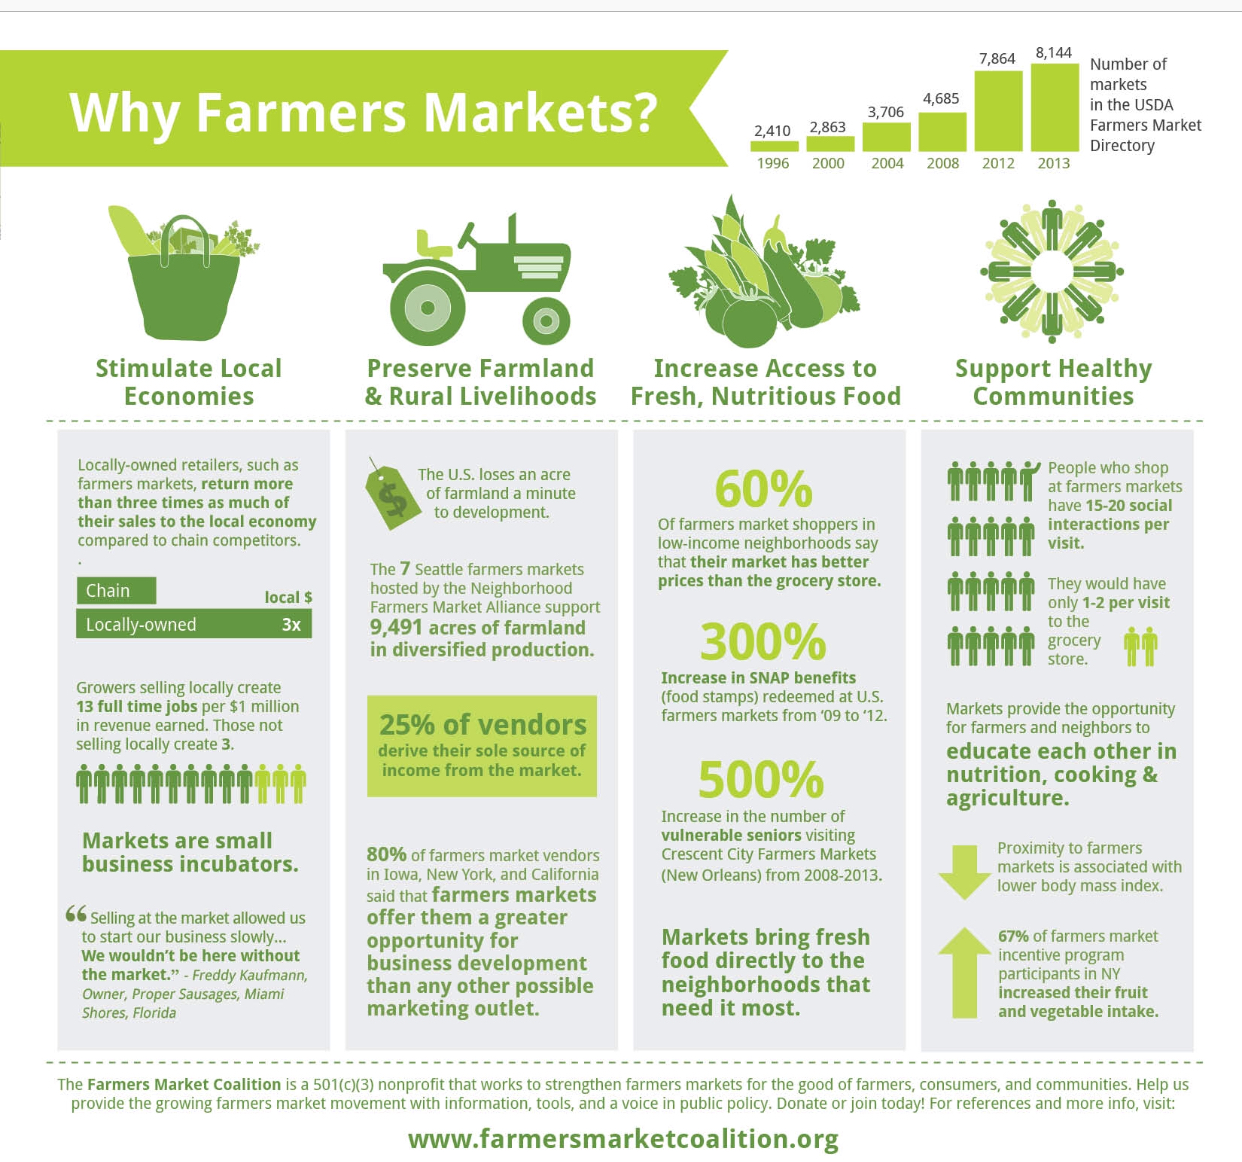 More info on shopping from local farmers